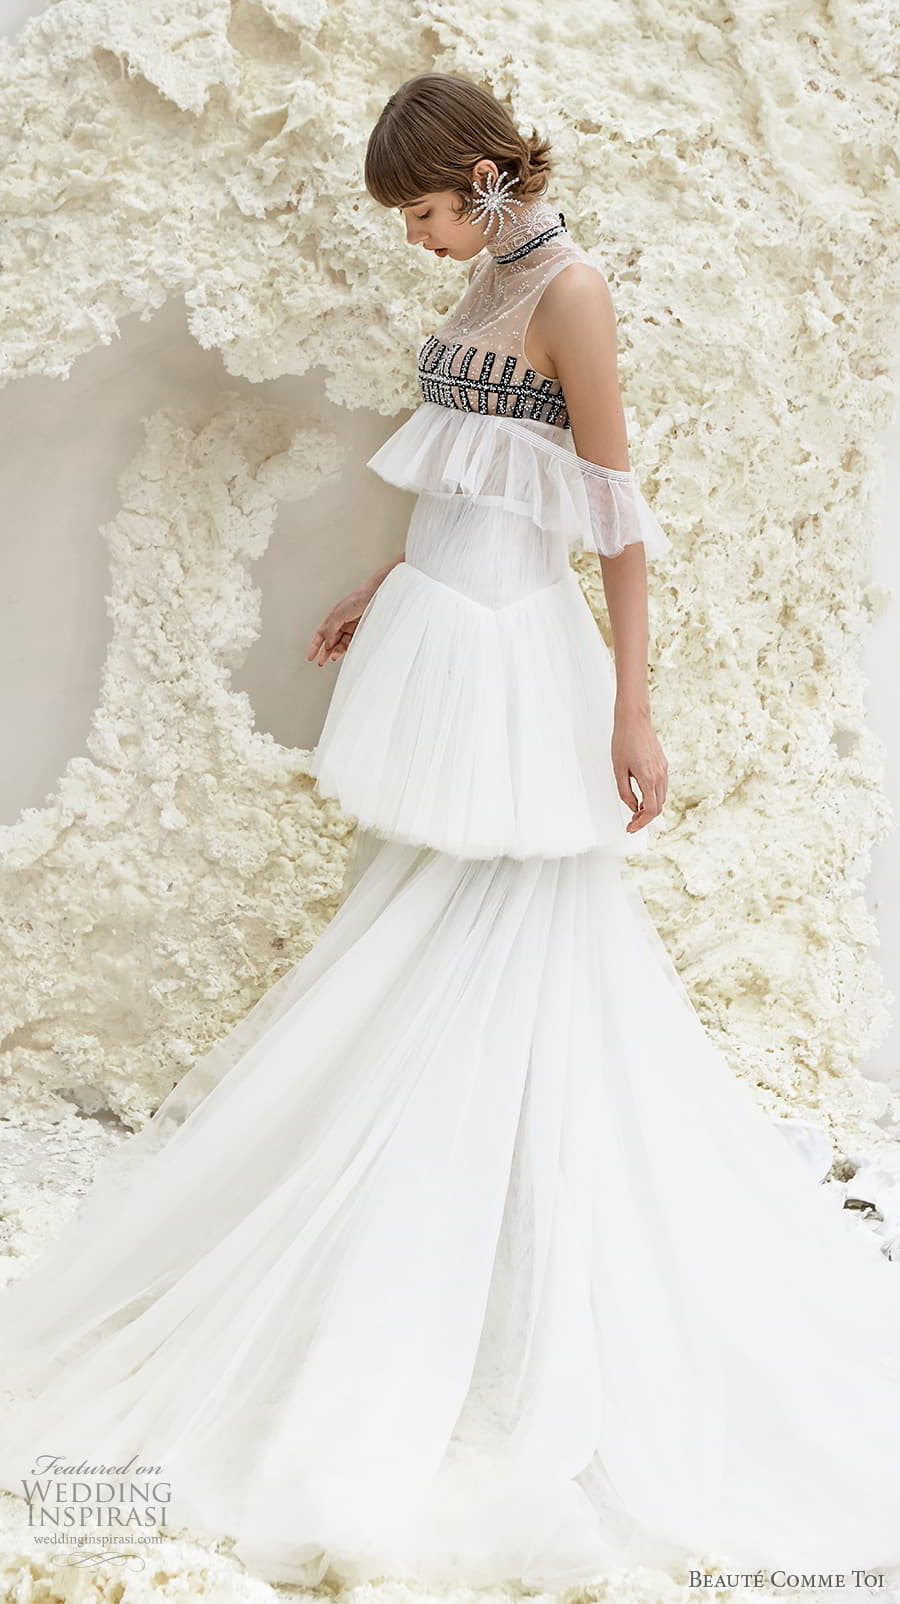 beaute comme toi spring 2022 bridal sleeveless high neck lightly embellished bodice empire a line wedding dress sheer button back tiered skirt sweep train (faye) sv